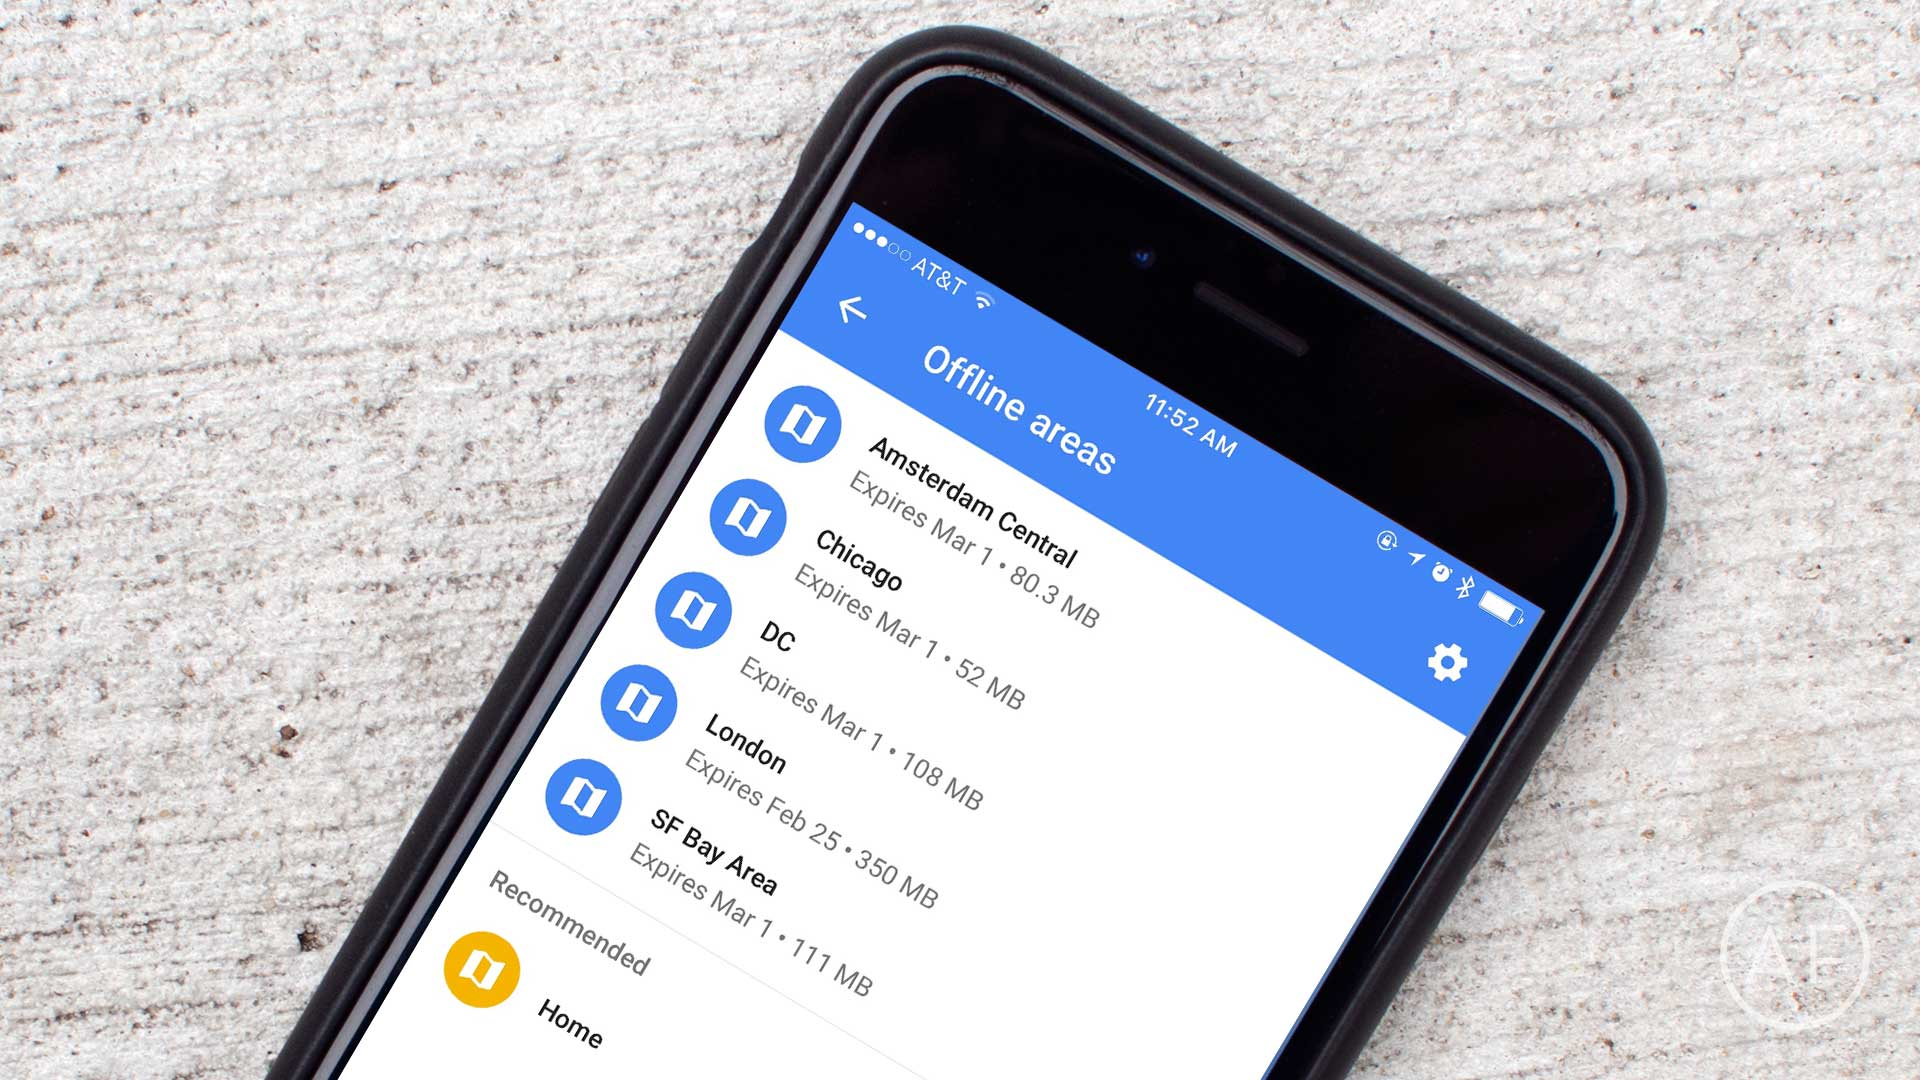 Need offline maps for times when they're no cellular or Wi-Fi data available? Google Maps gives them to you for free.